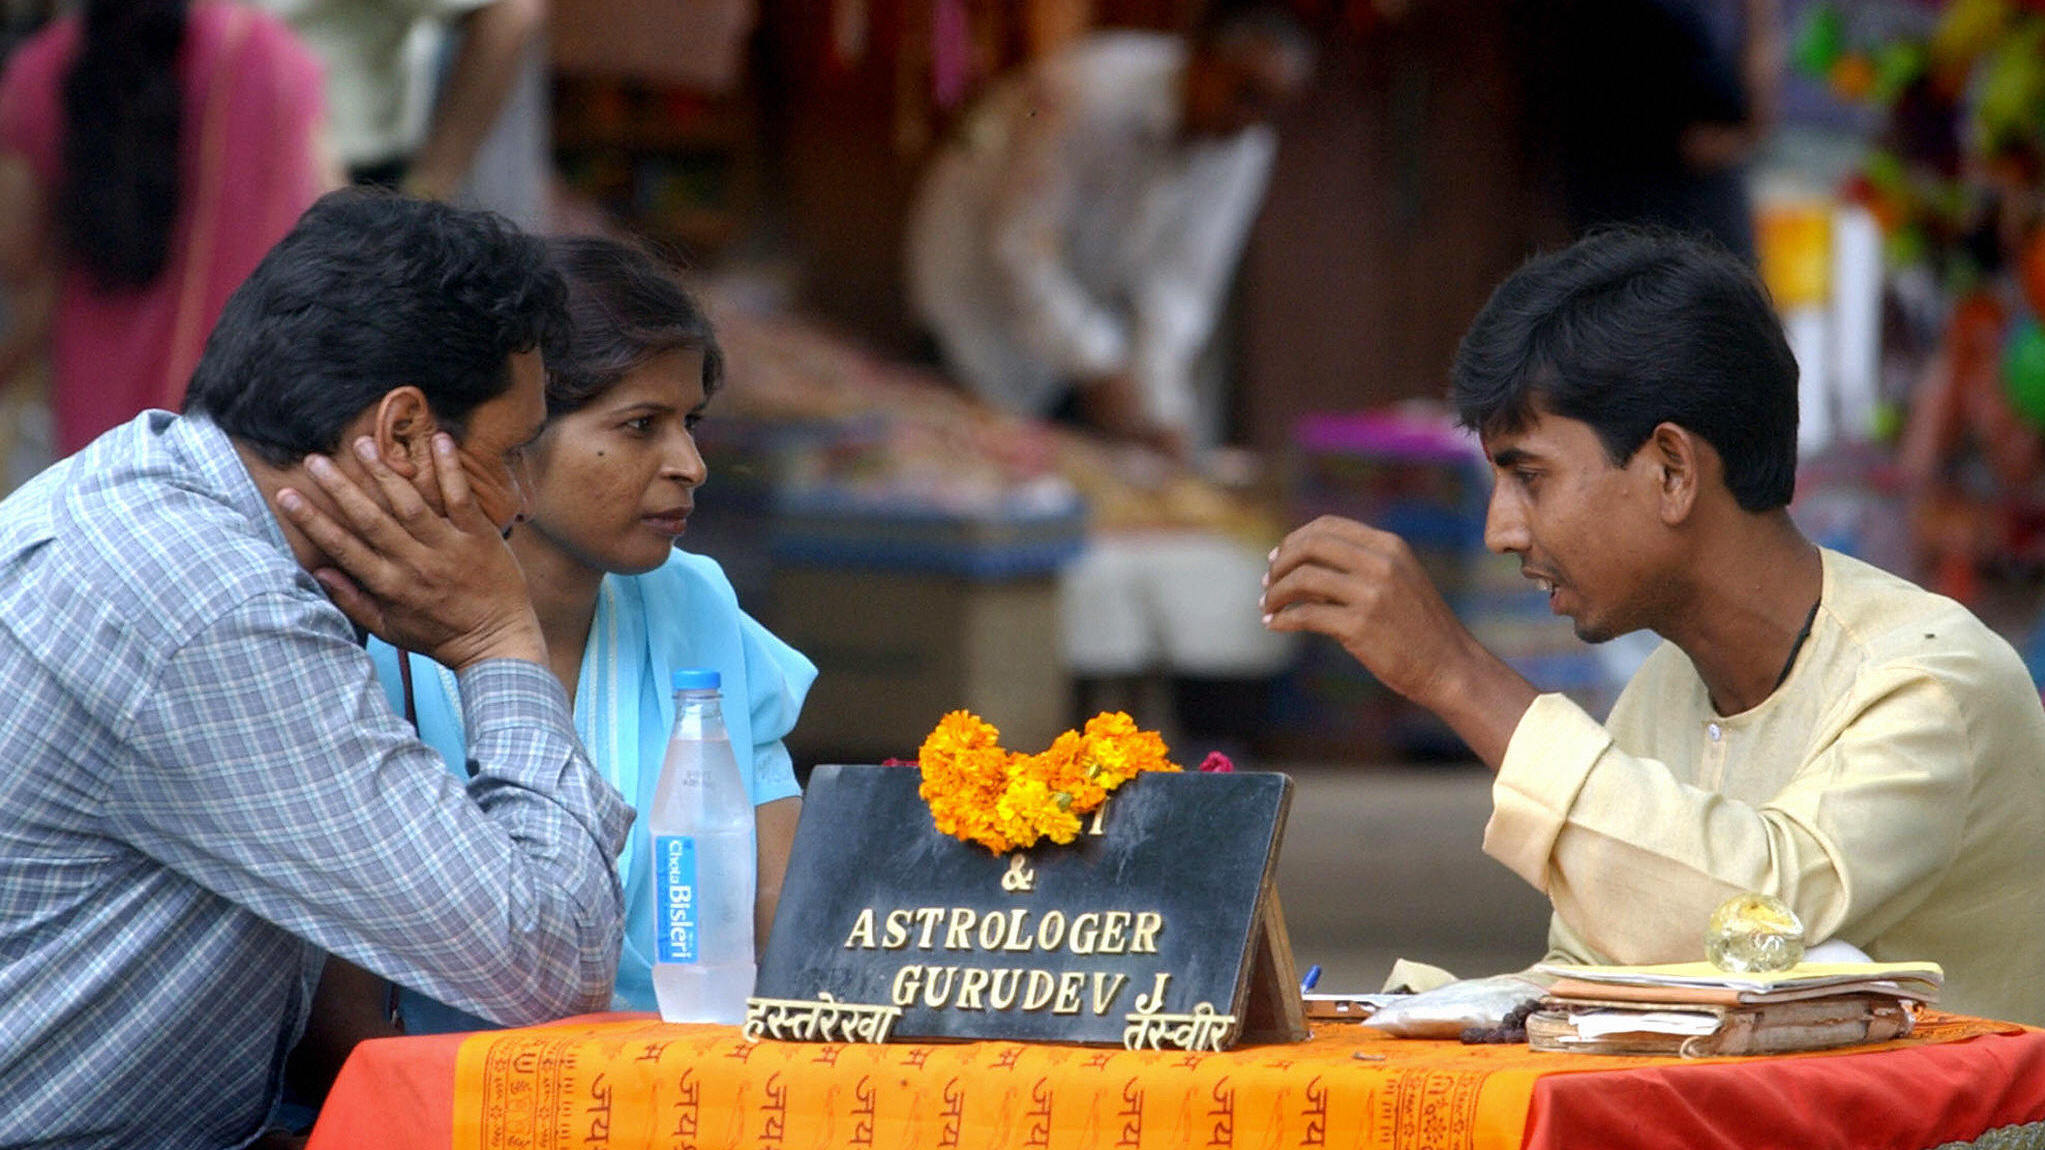 indian astrology and science